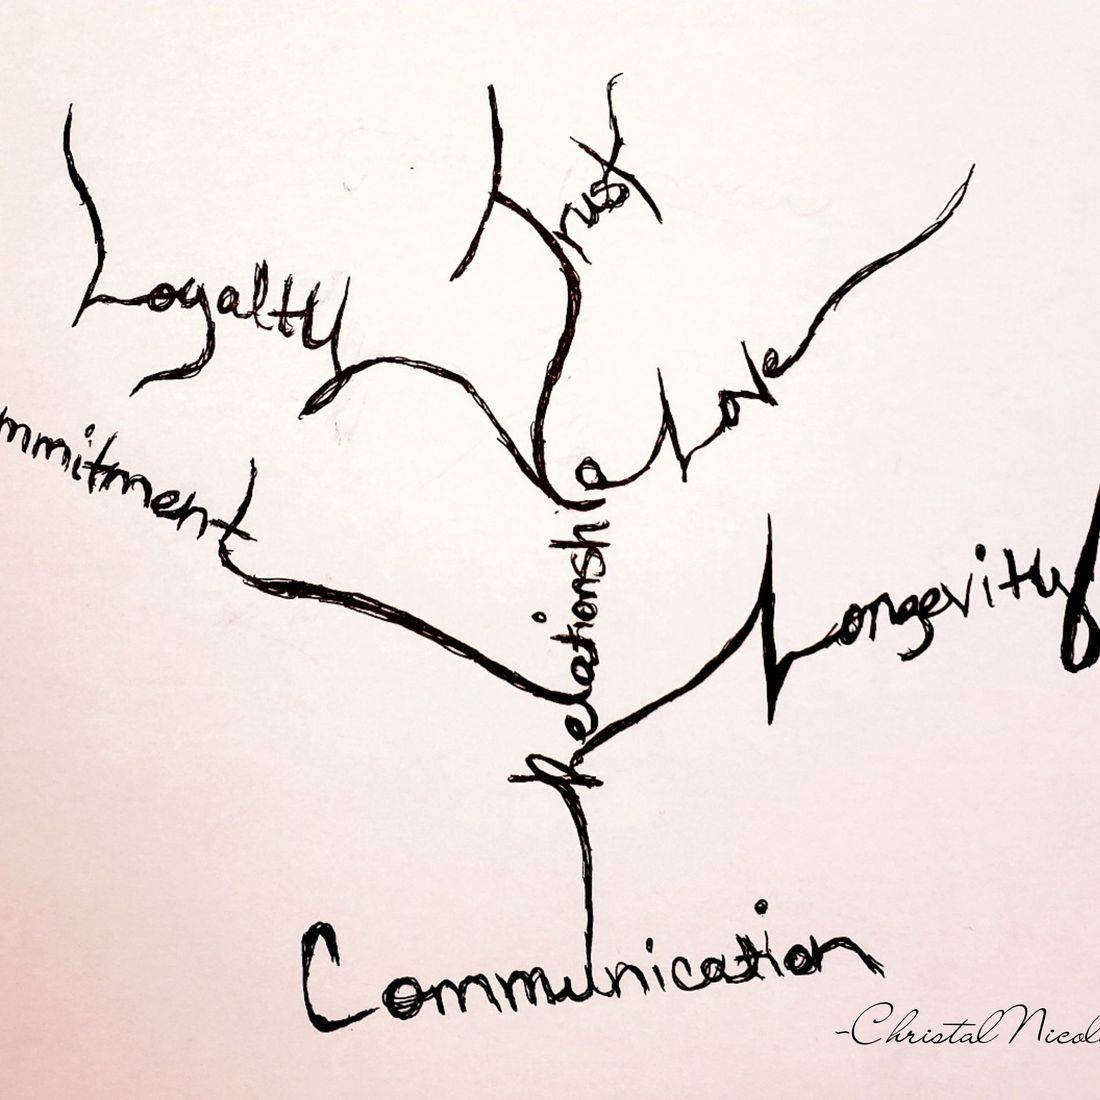 communication tree- image consultant in Allen, TX